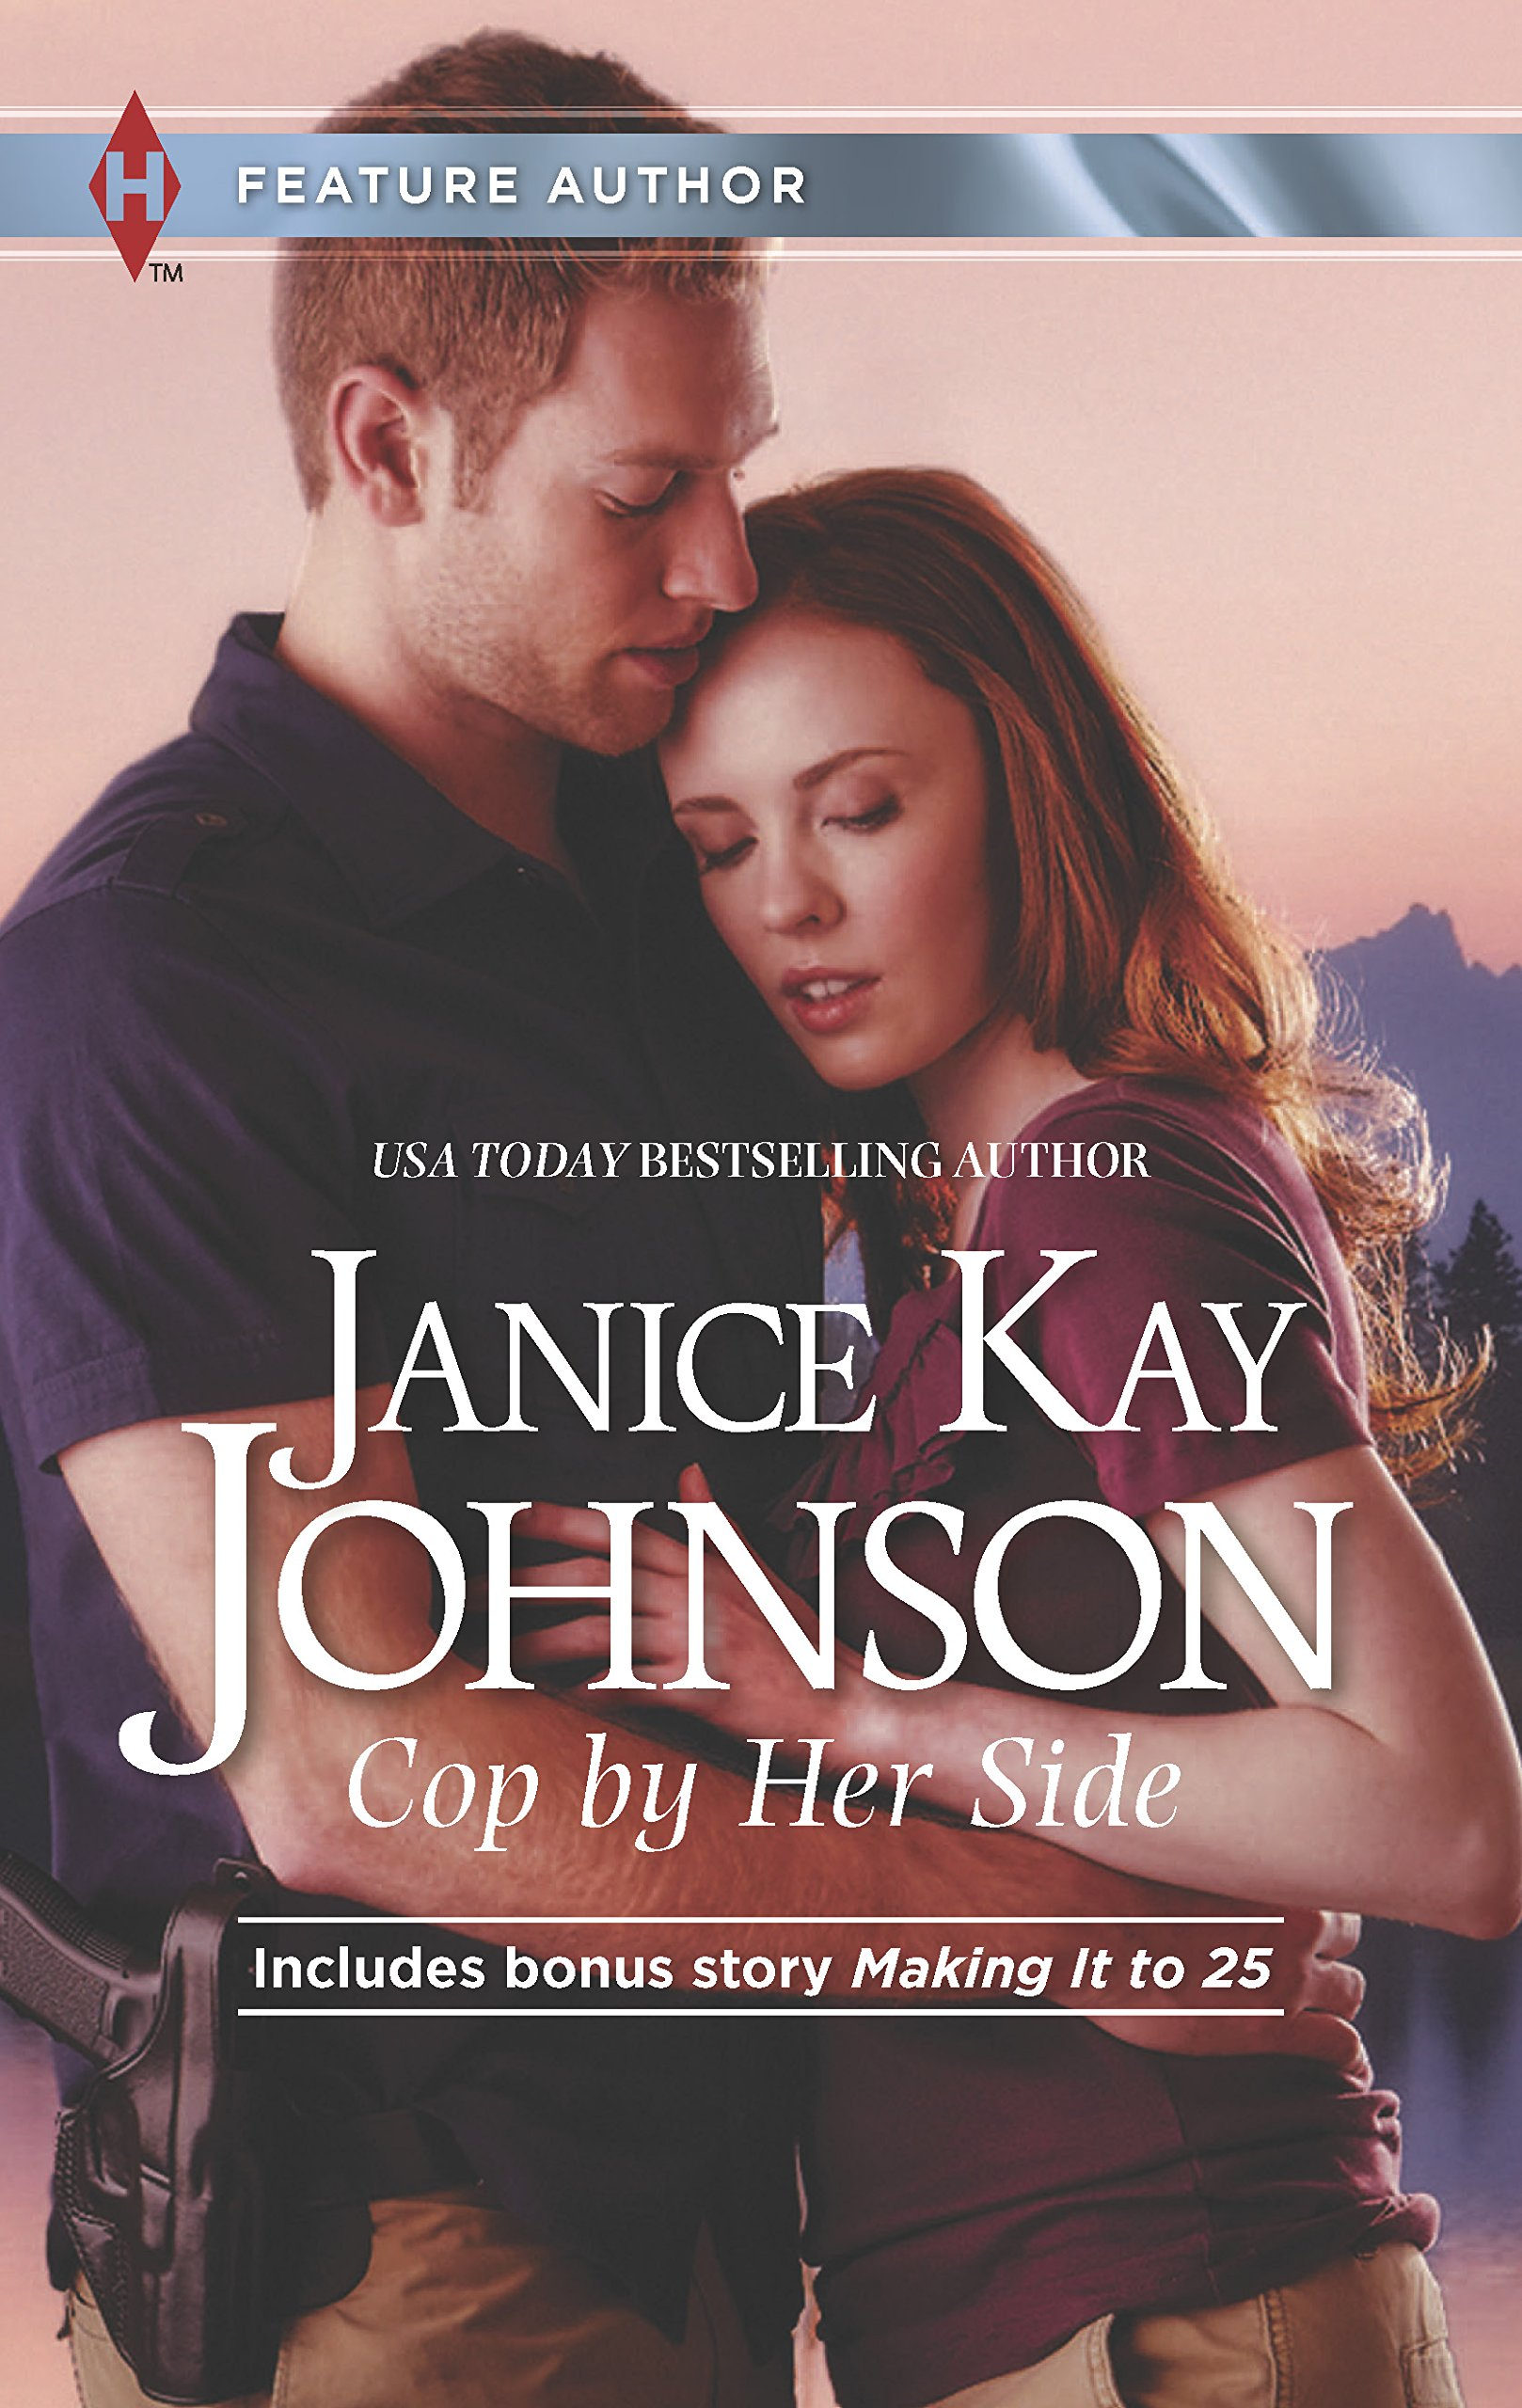 Cop by Her Side (Harlequin Feature Author) pdf